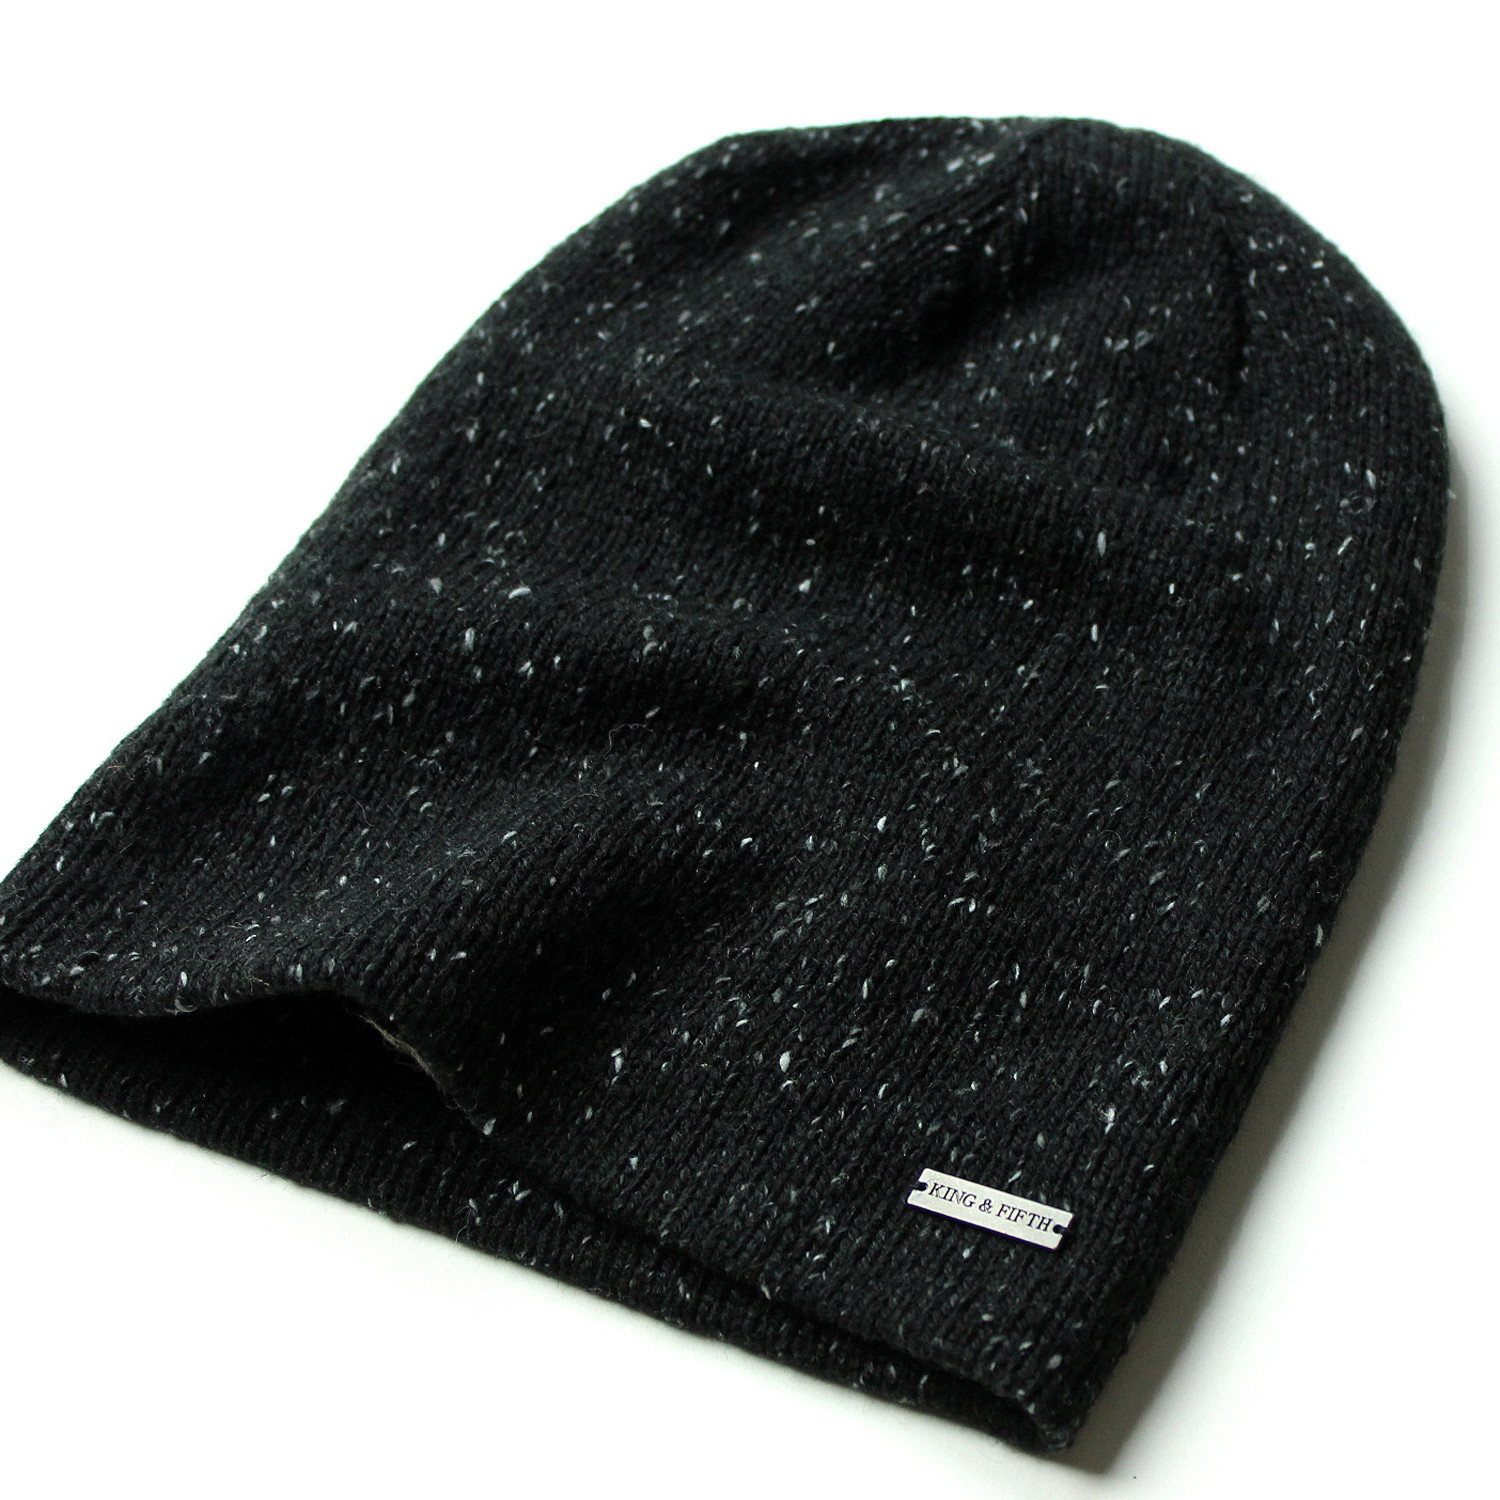 376d7e3dcd534 The Hadley Slouchy Beanie    Black + Nep - King   Fifth - Touch of ...